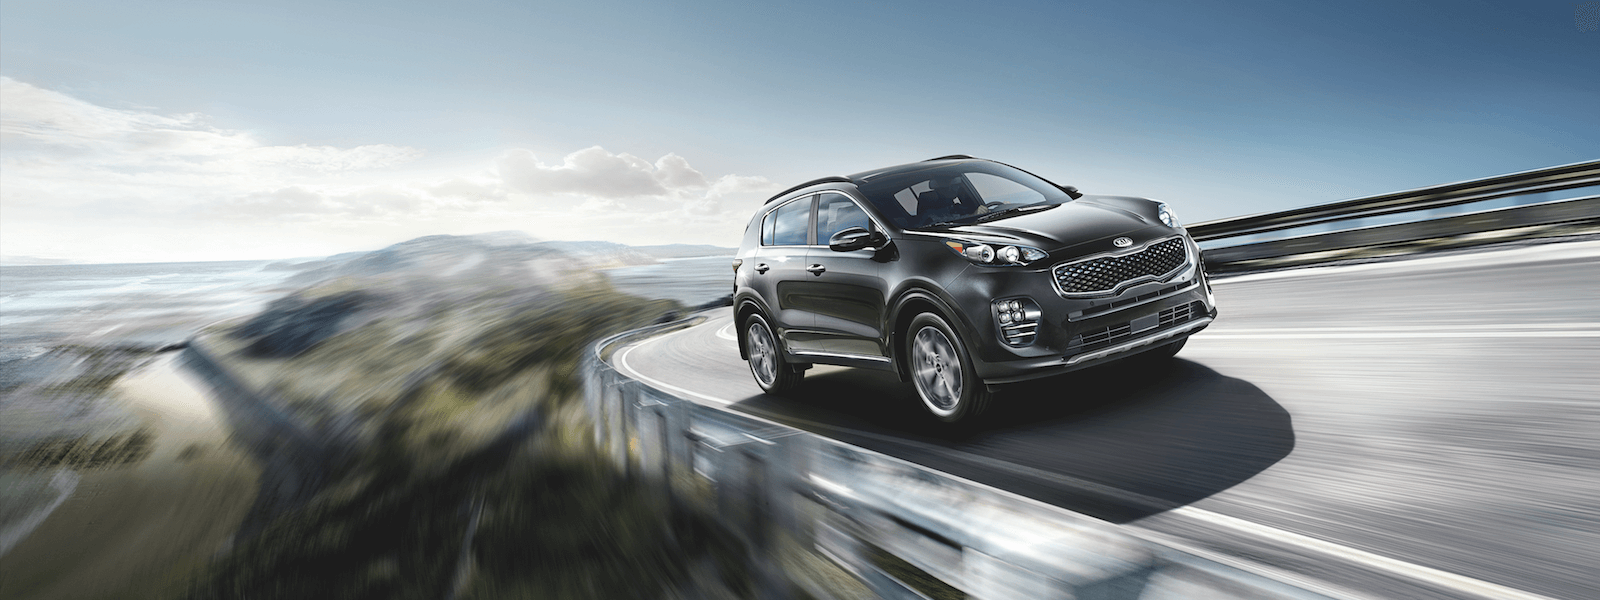 A 2019 Kia Sportage driving on a highway through the mountains